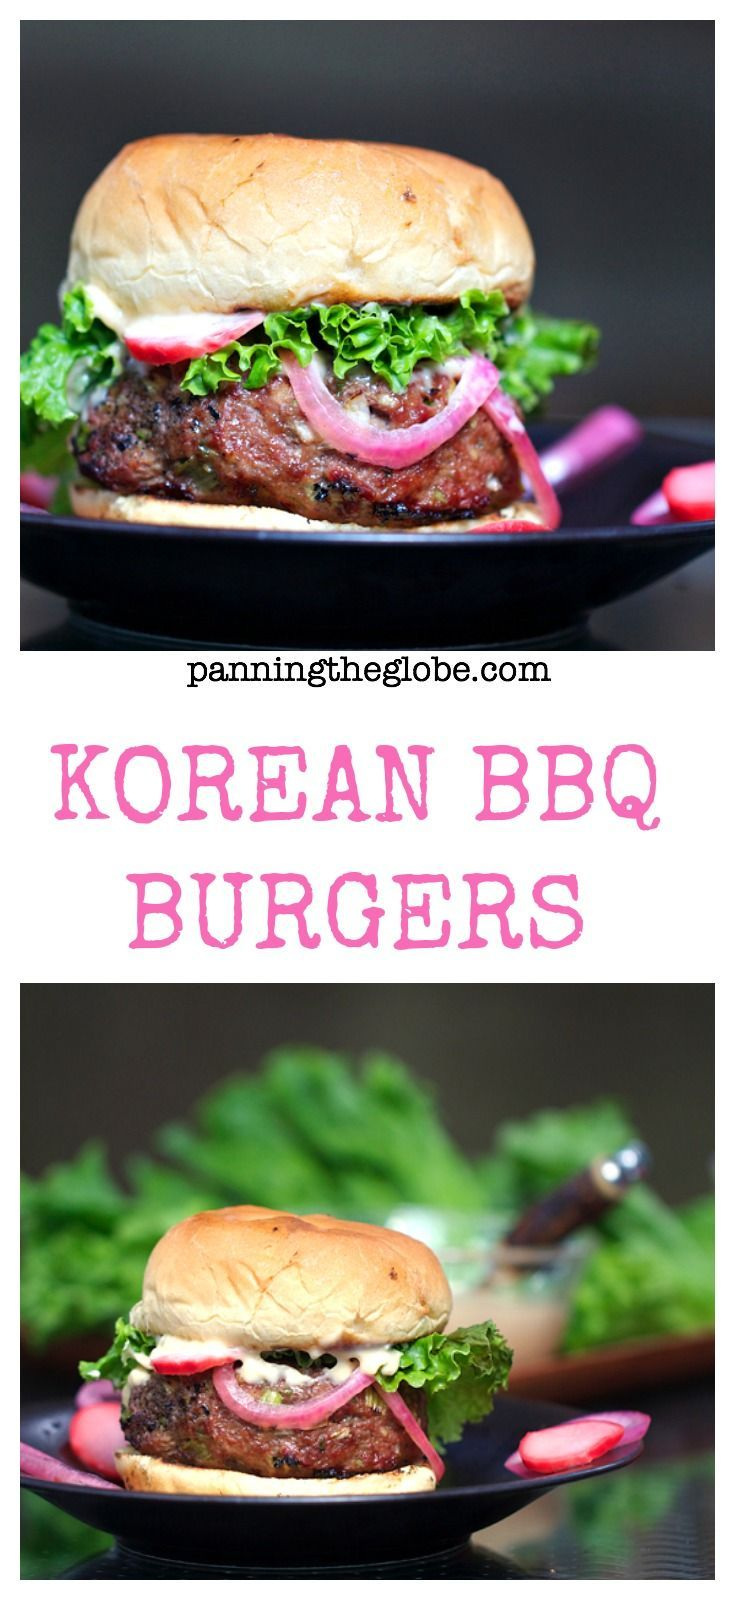 KOREAN BBQ BURGERS with PICKLED RADISHES, ONIONS, AND MISO ...